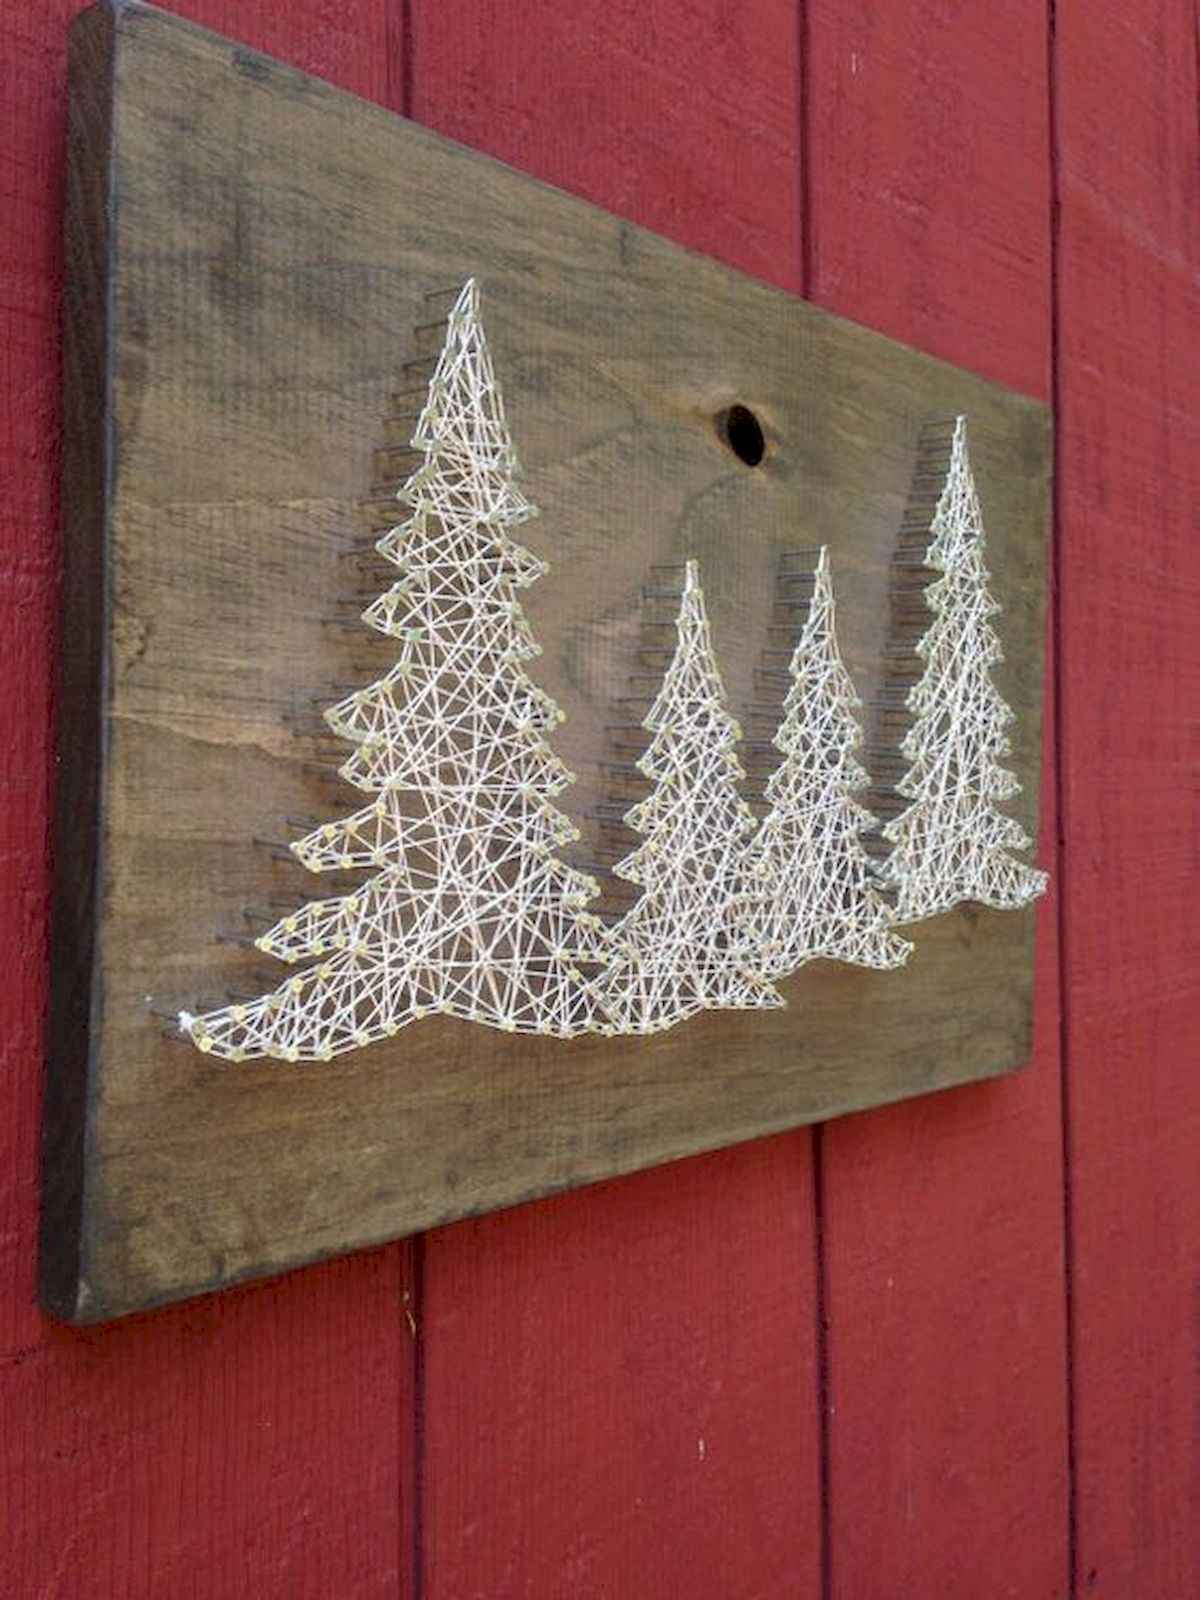 60 awesome wall art christmas ideas decorations (37)